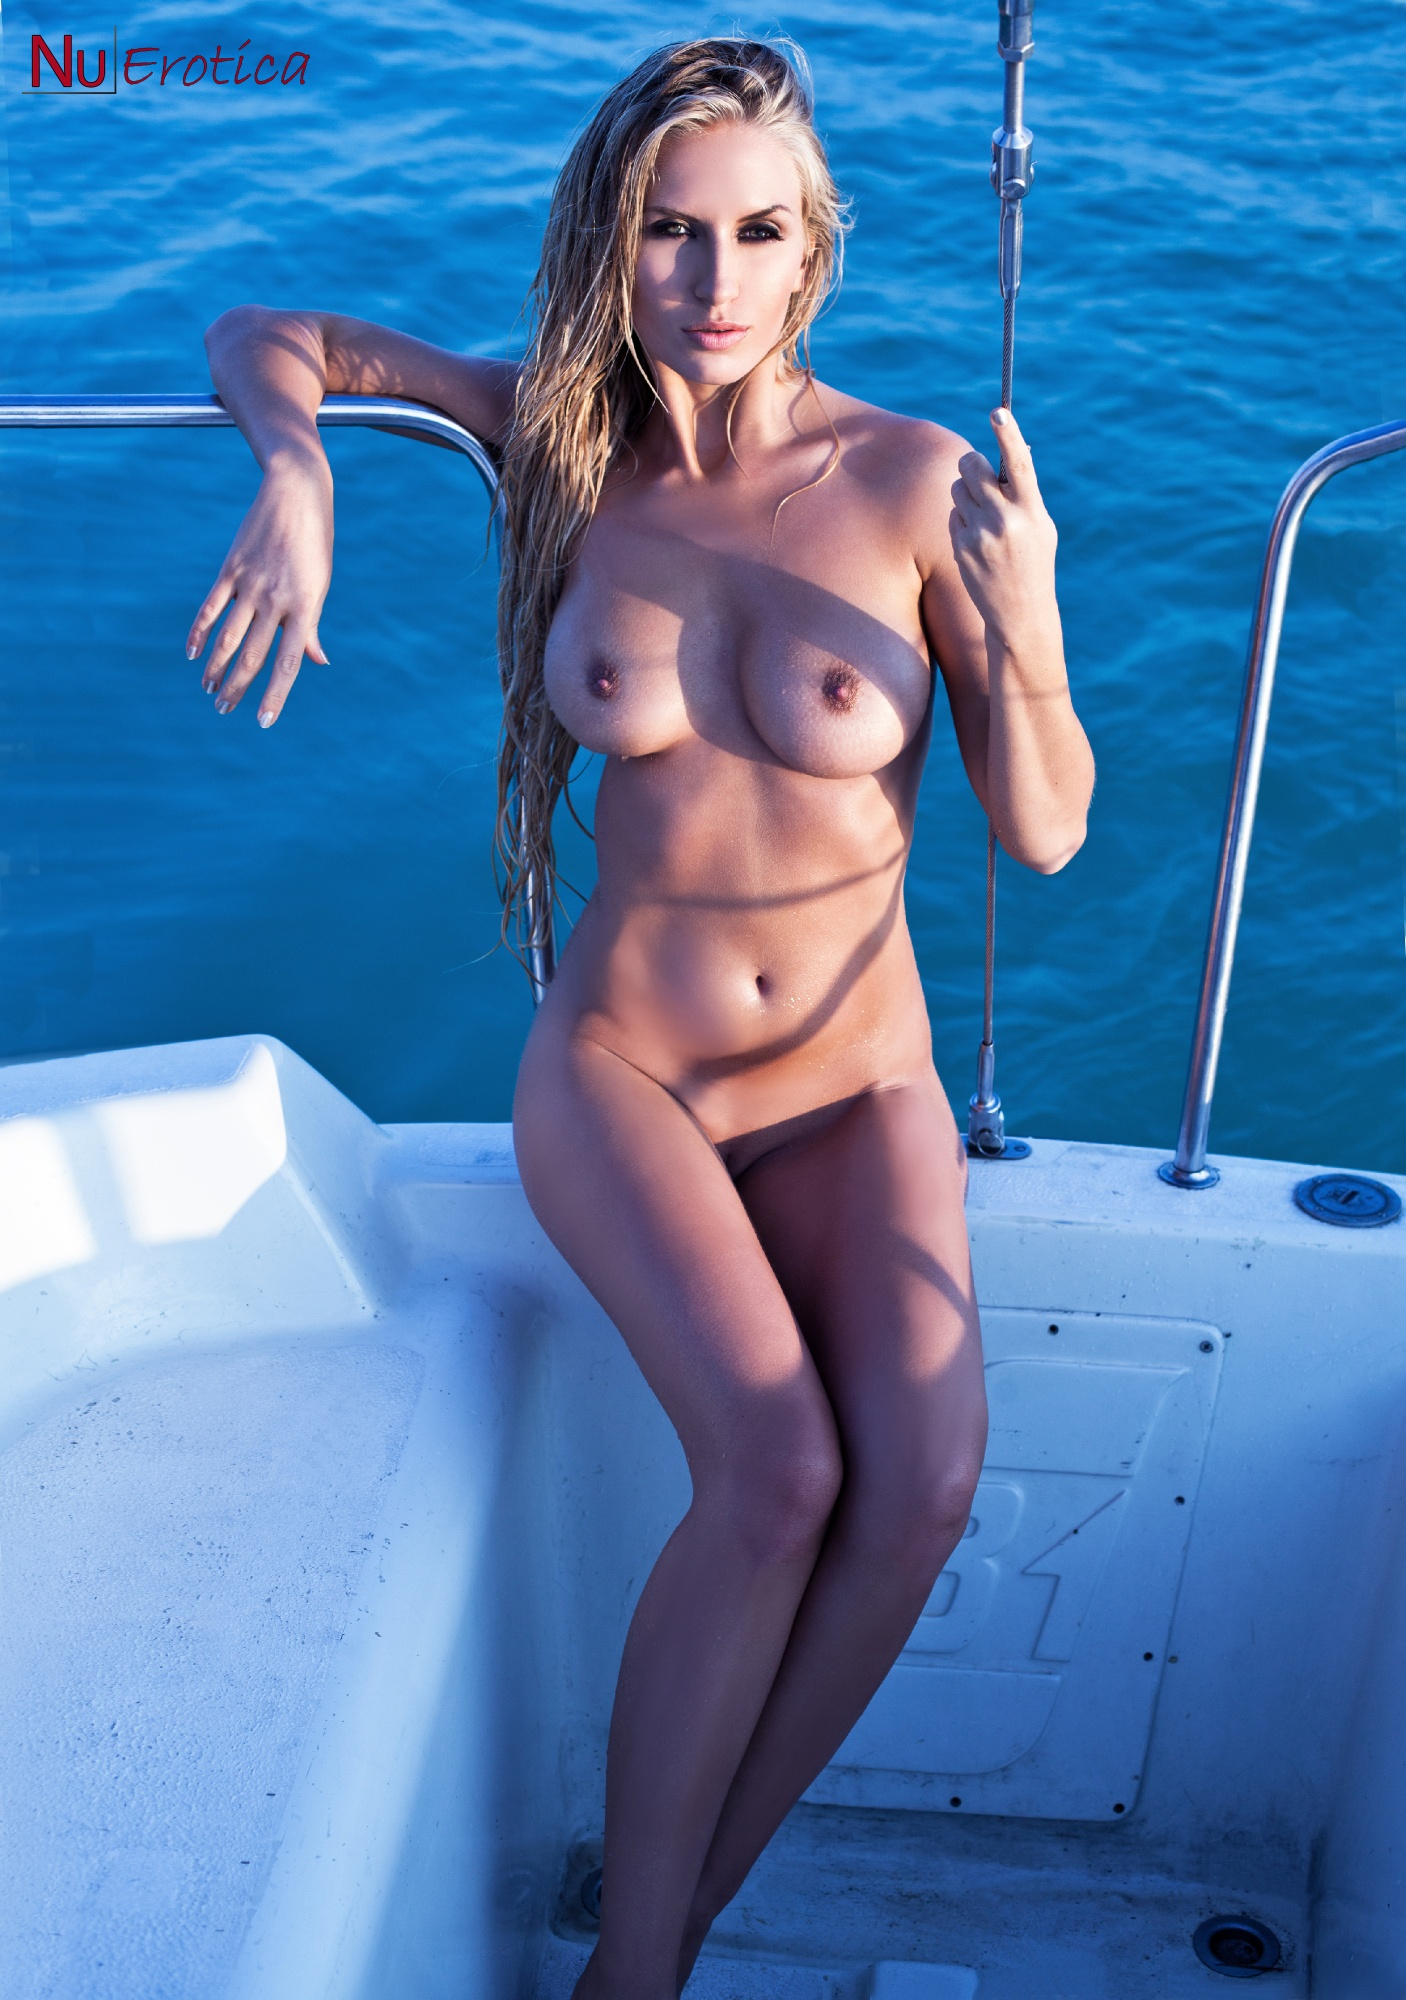 Babe wife nude boating